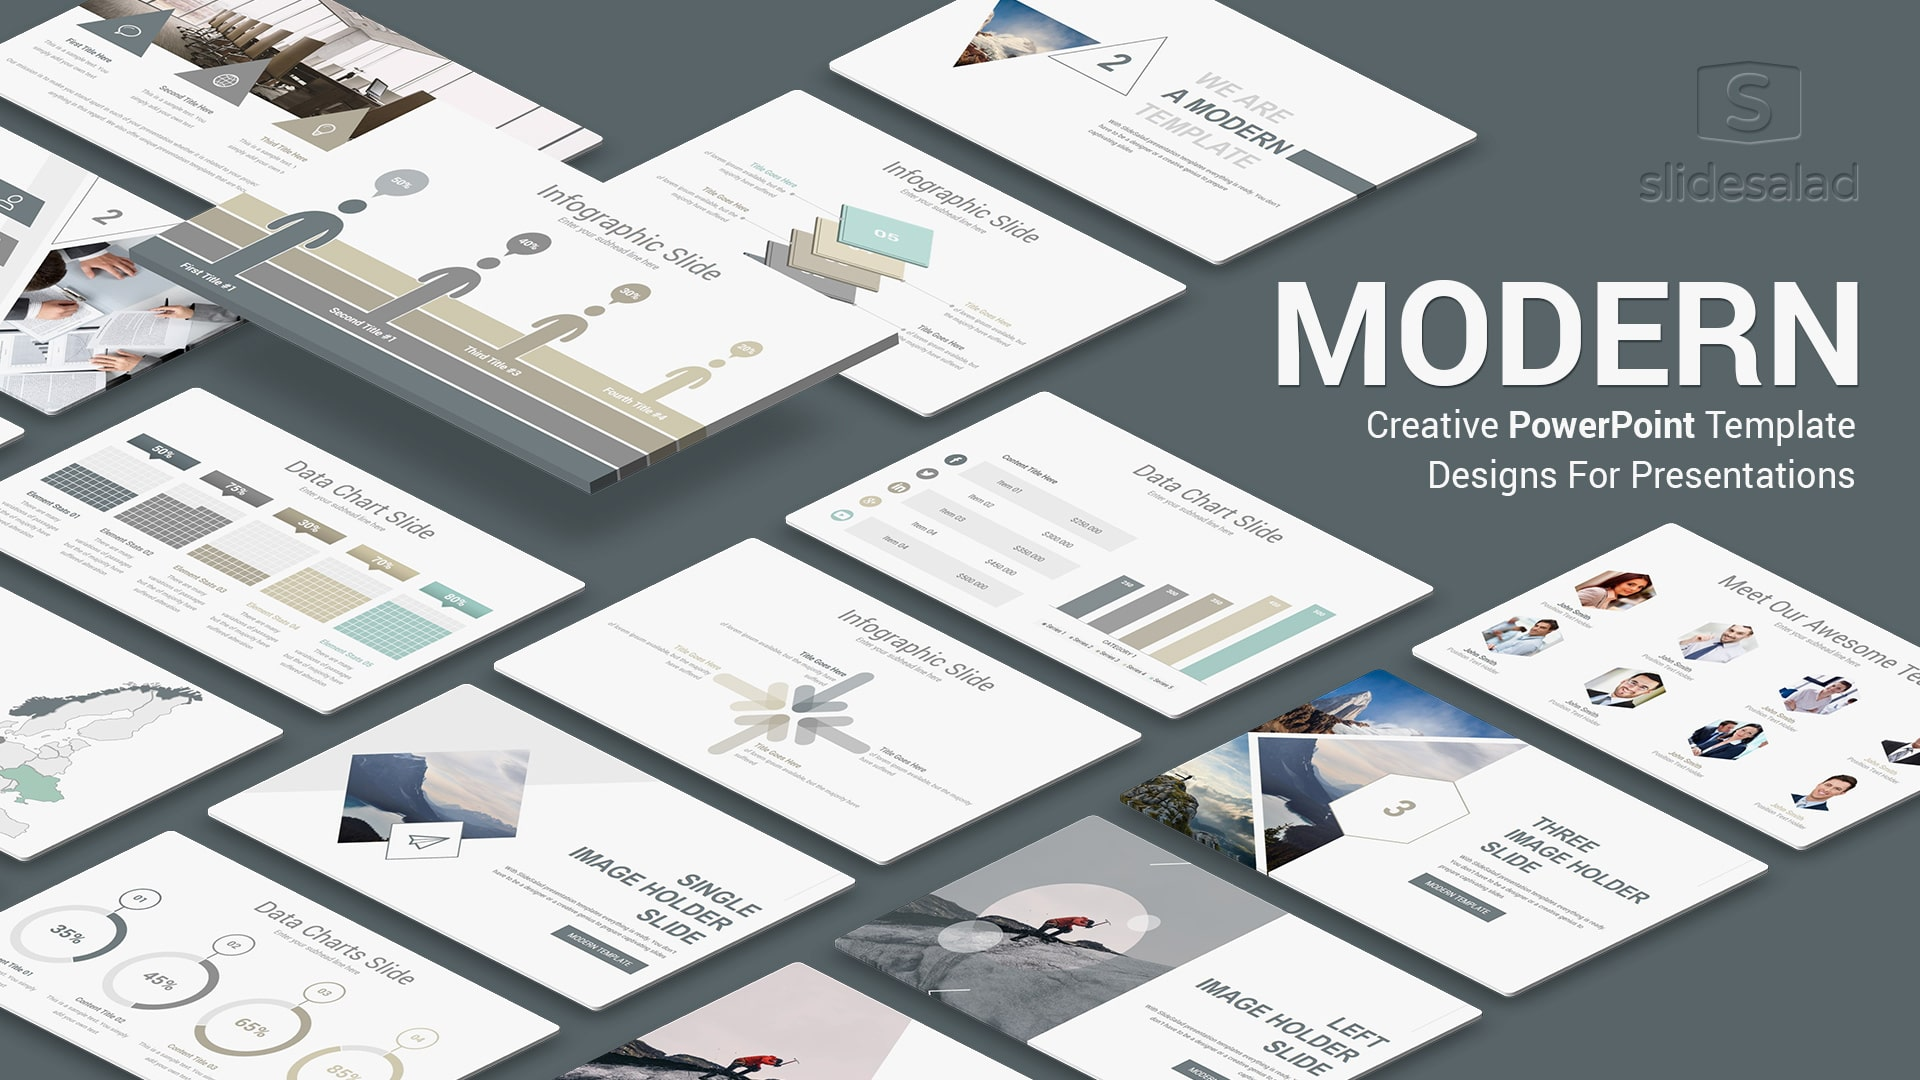 40 Minimalist Ppt Templates To Make Simple Modern Powerpoint Presentations In 2021 Slidesalad